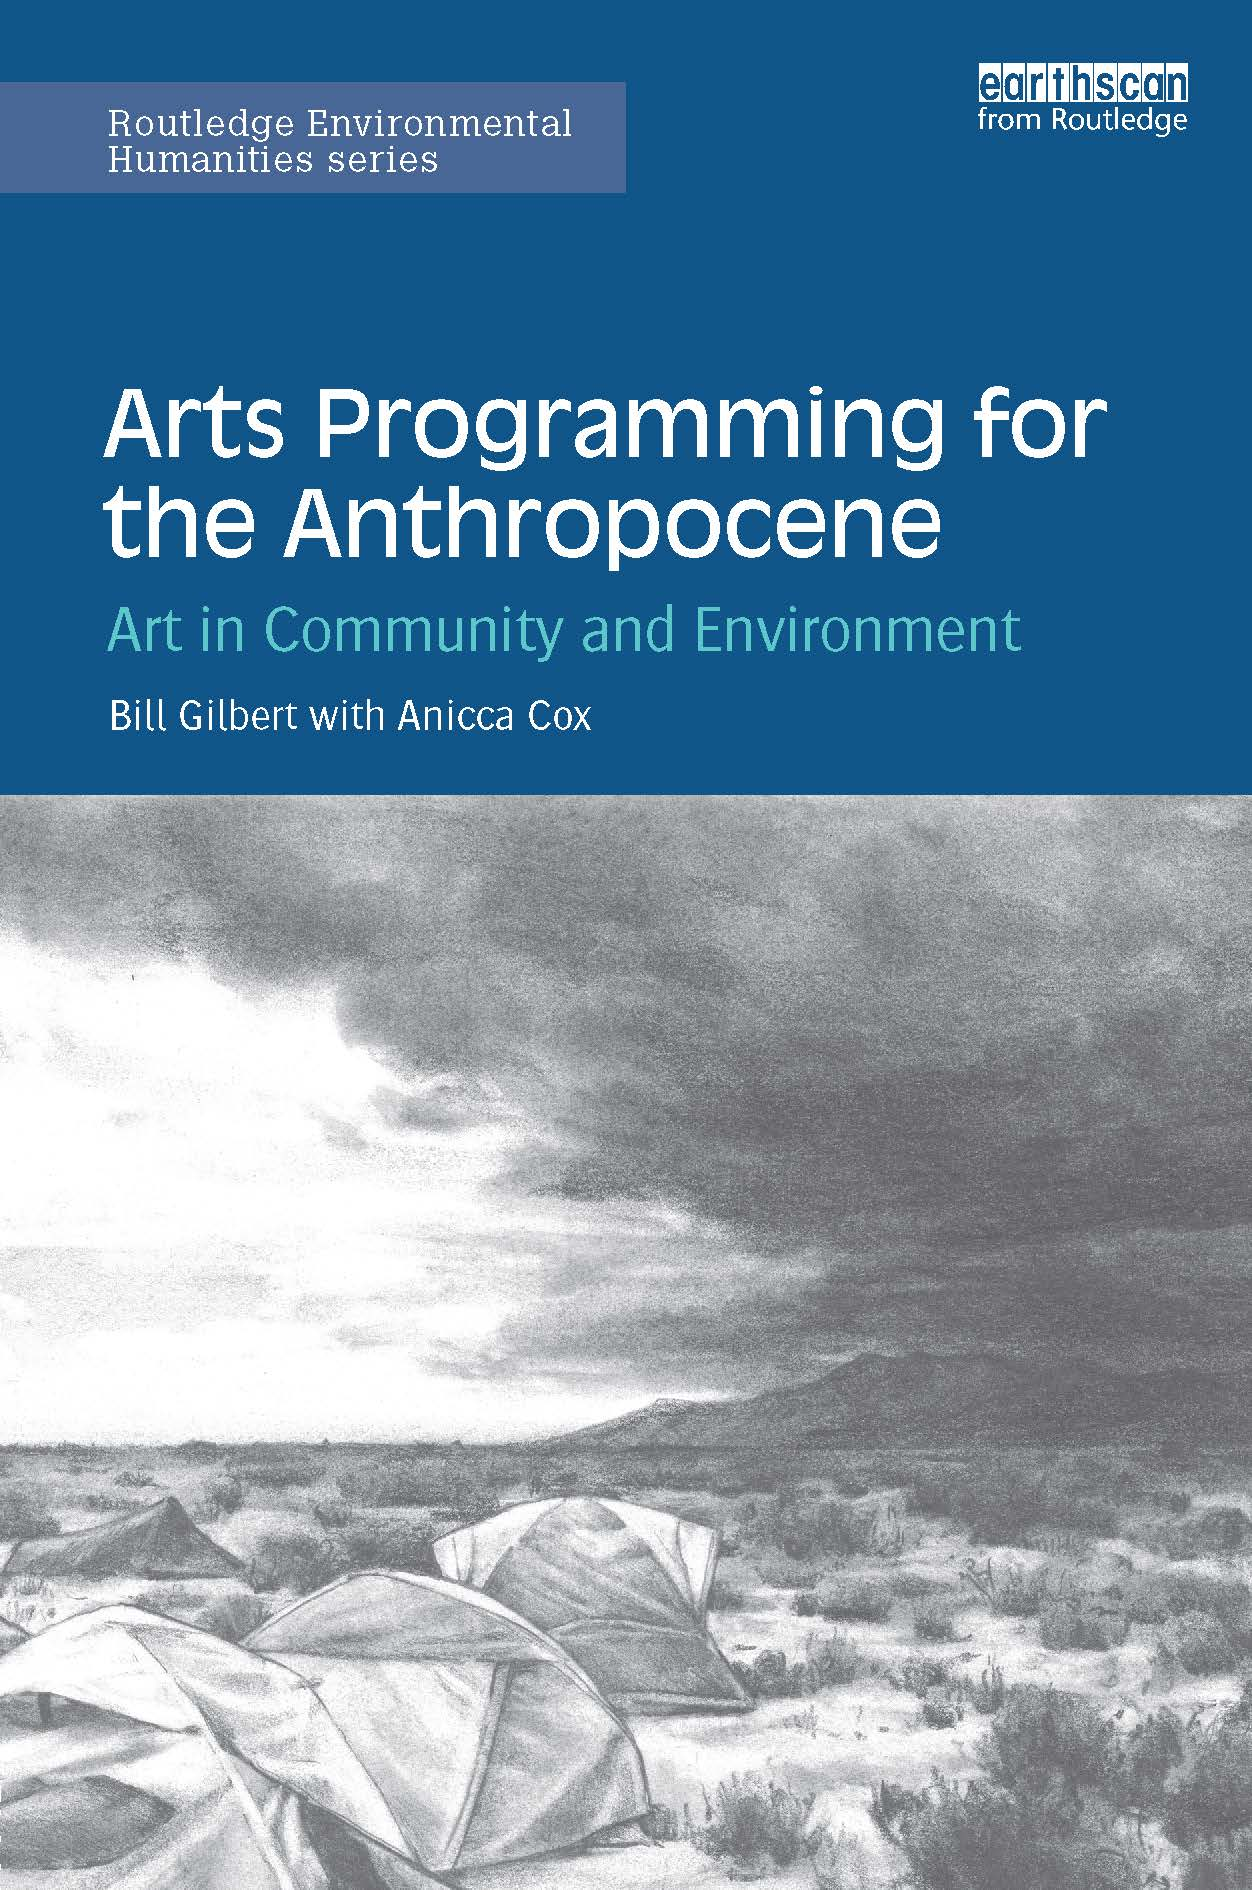 Professor of Art and Ecology Bill Gilbert releases a new book